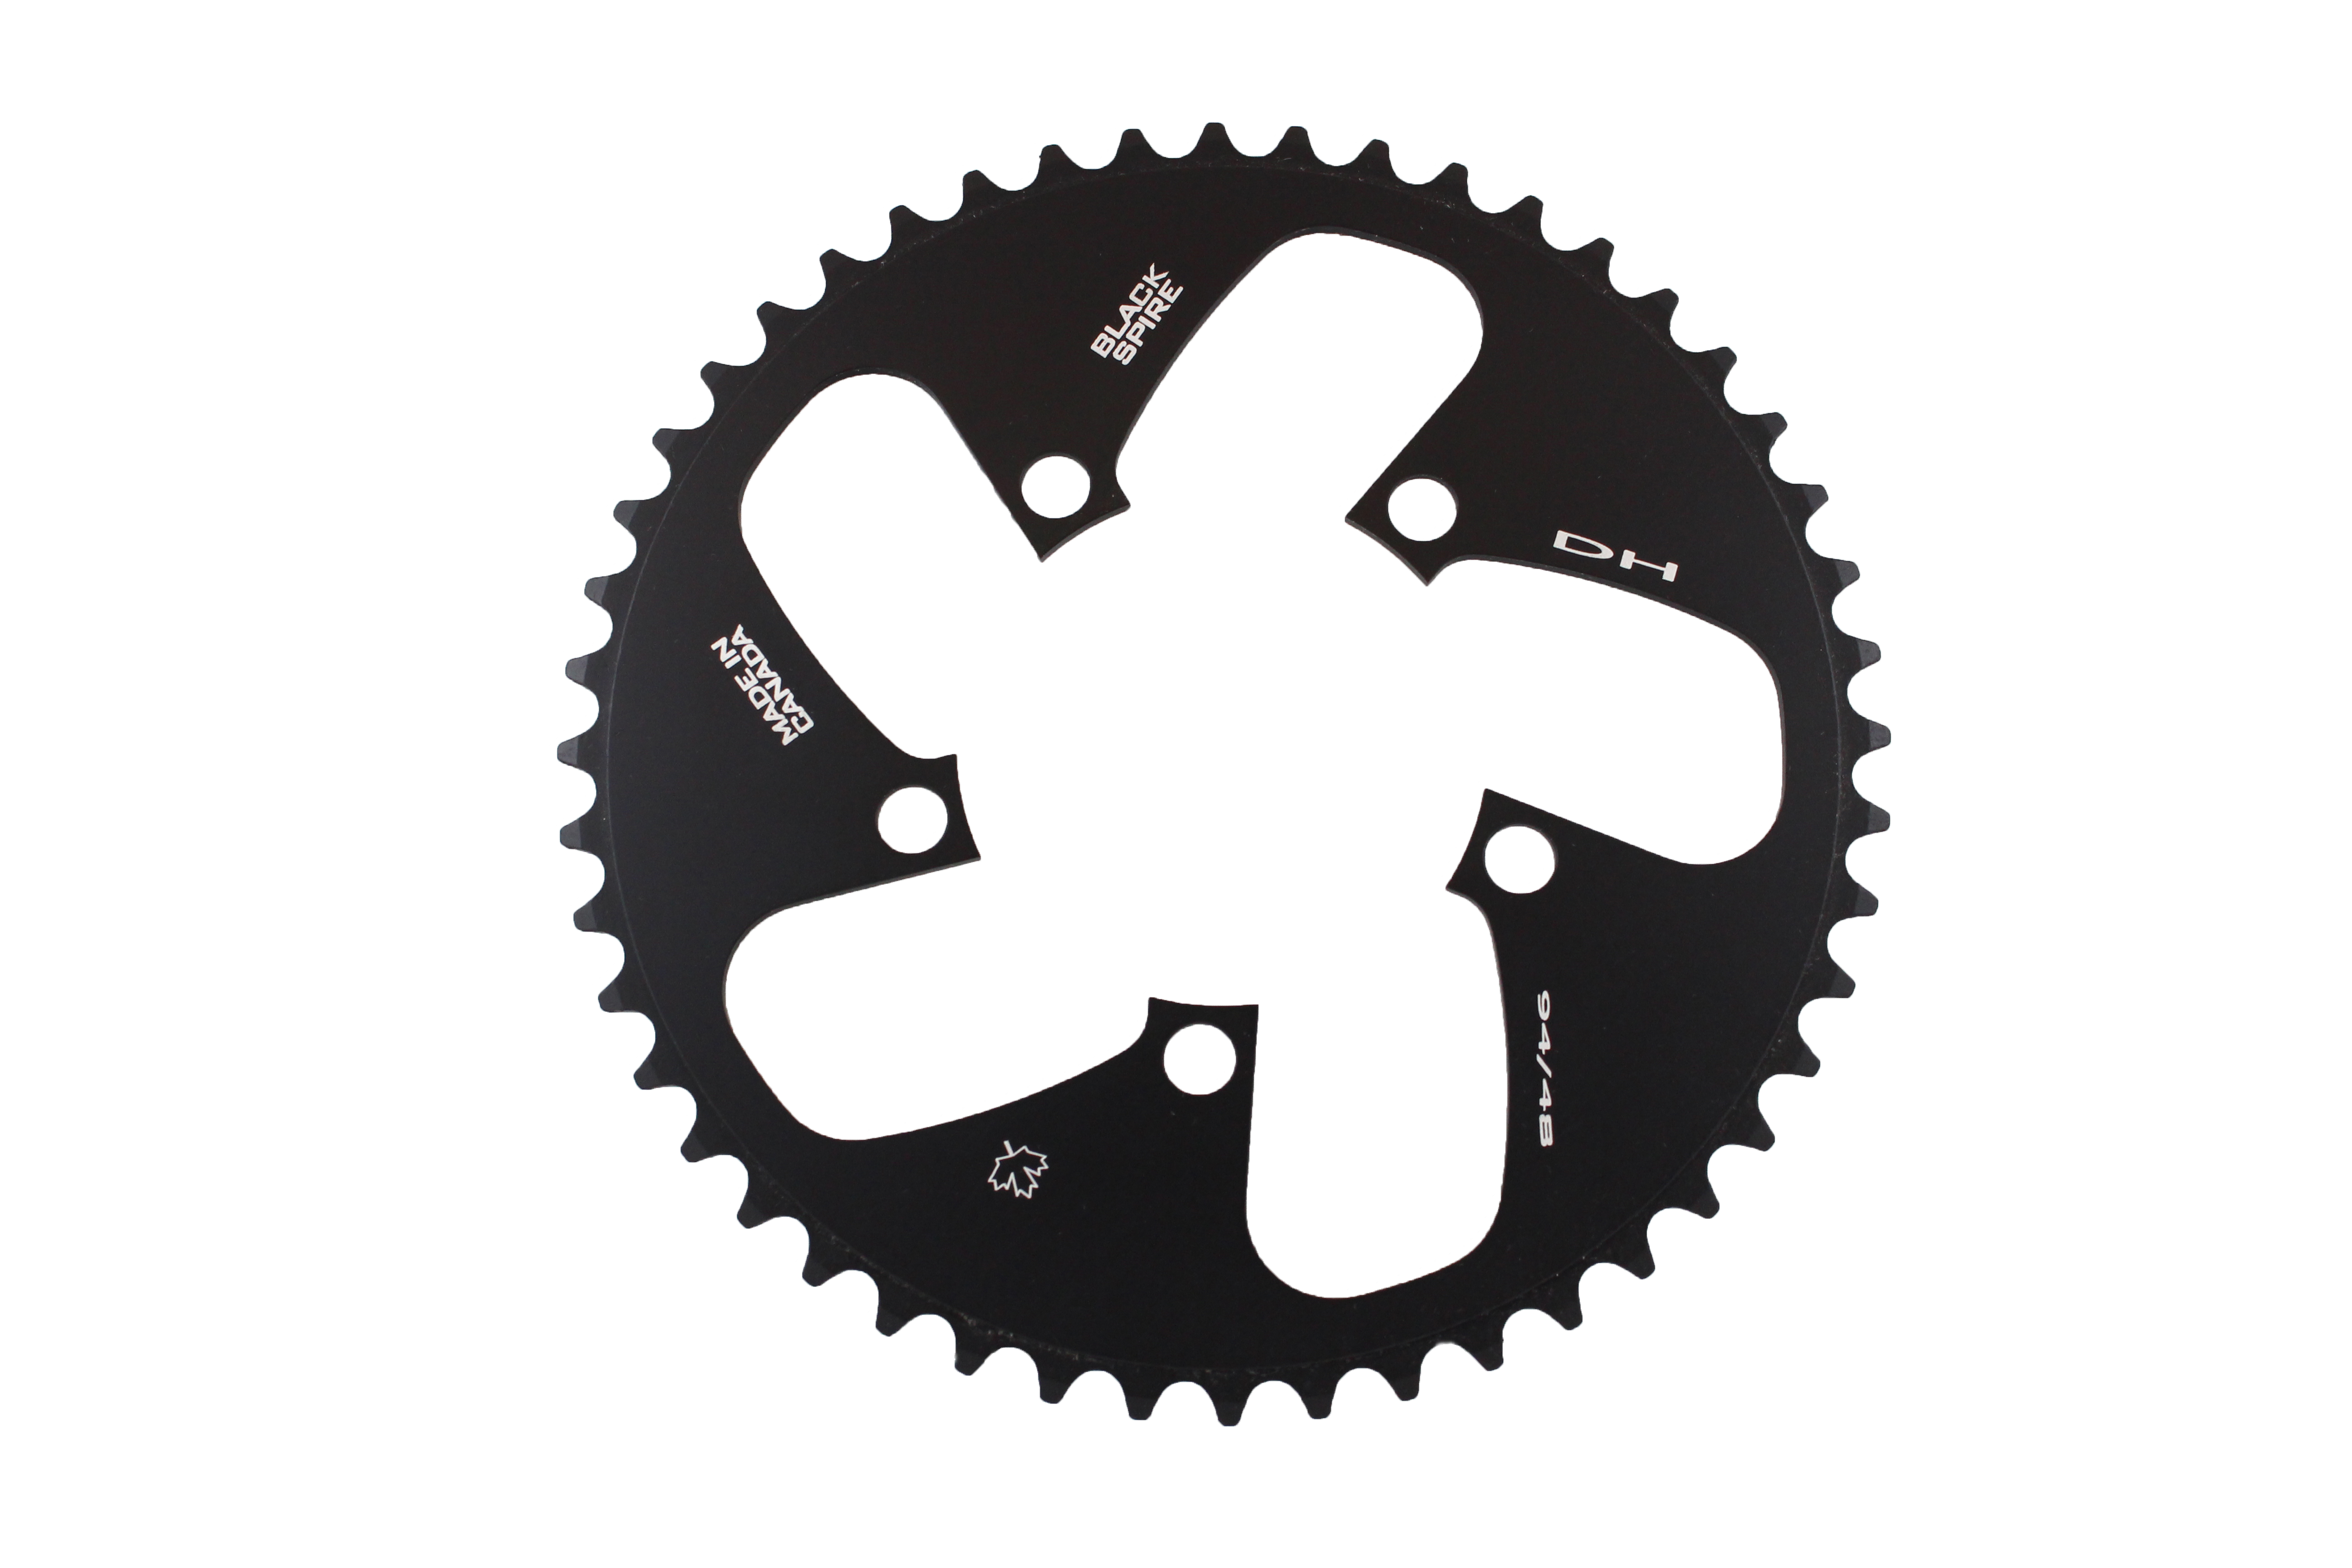 EPIC Downhill Chainrings